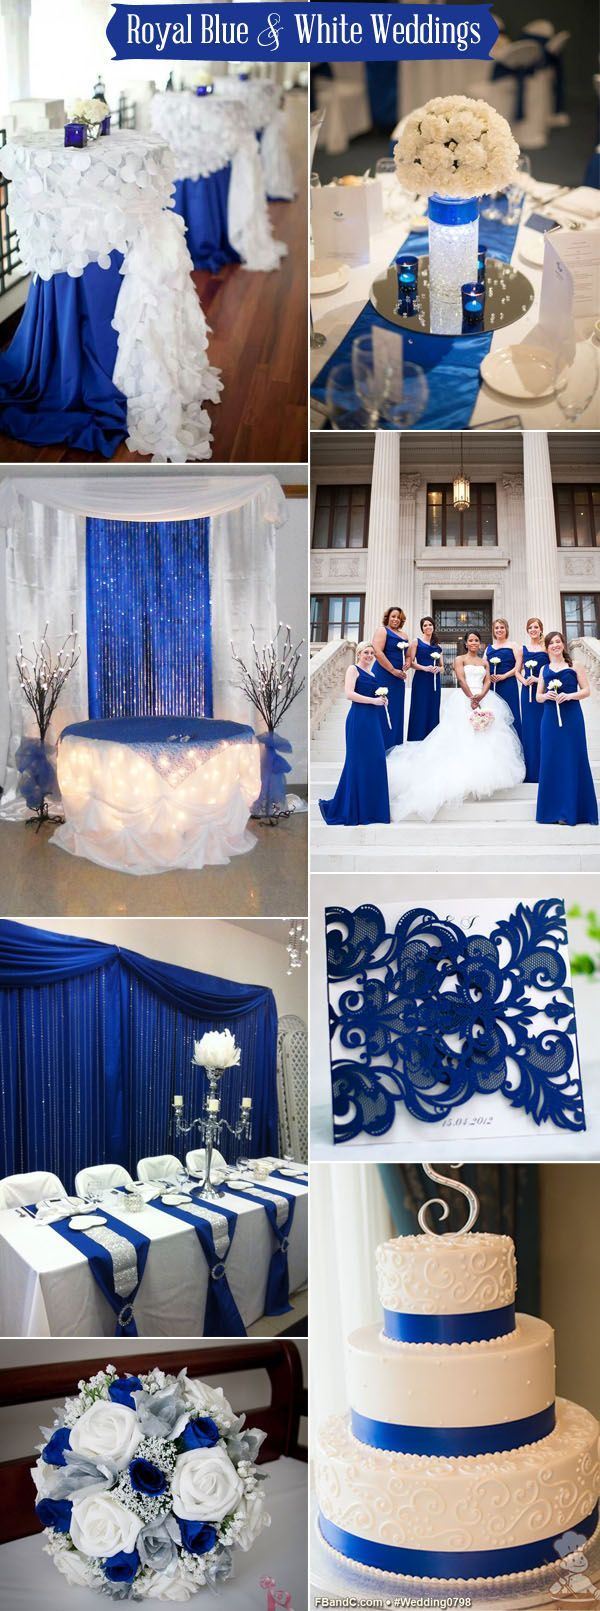 blue wedding decoration ideas. royal blue and white wedding color ideas Best 25  Blue weddings on Pinterest Wedding colors Navy